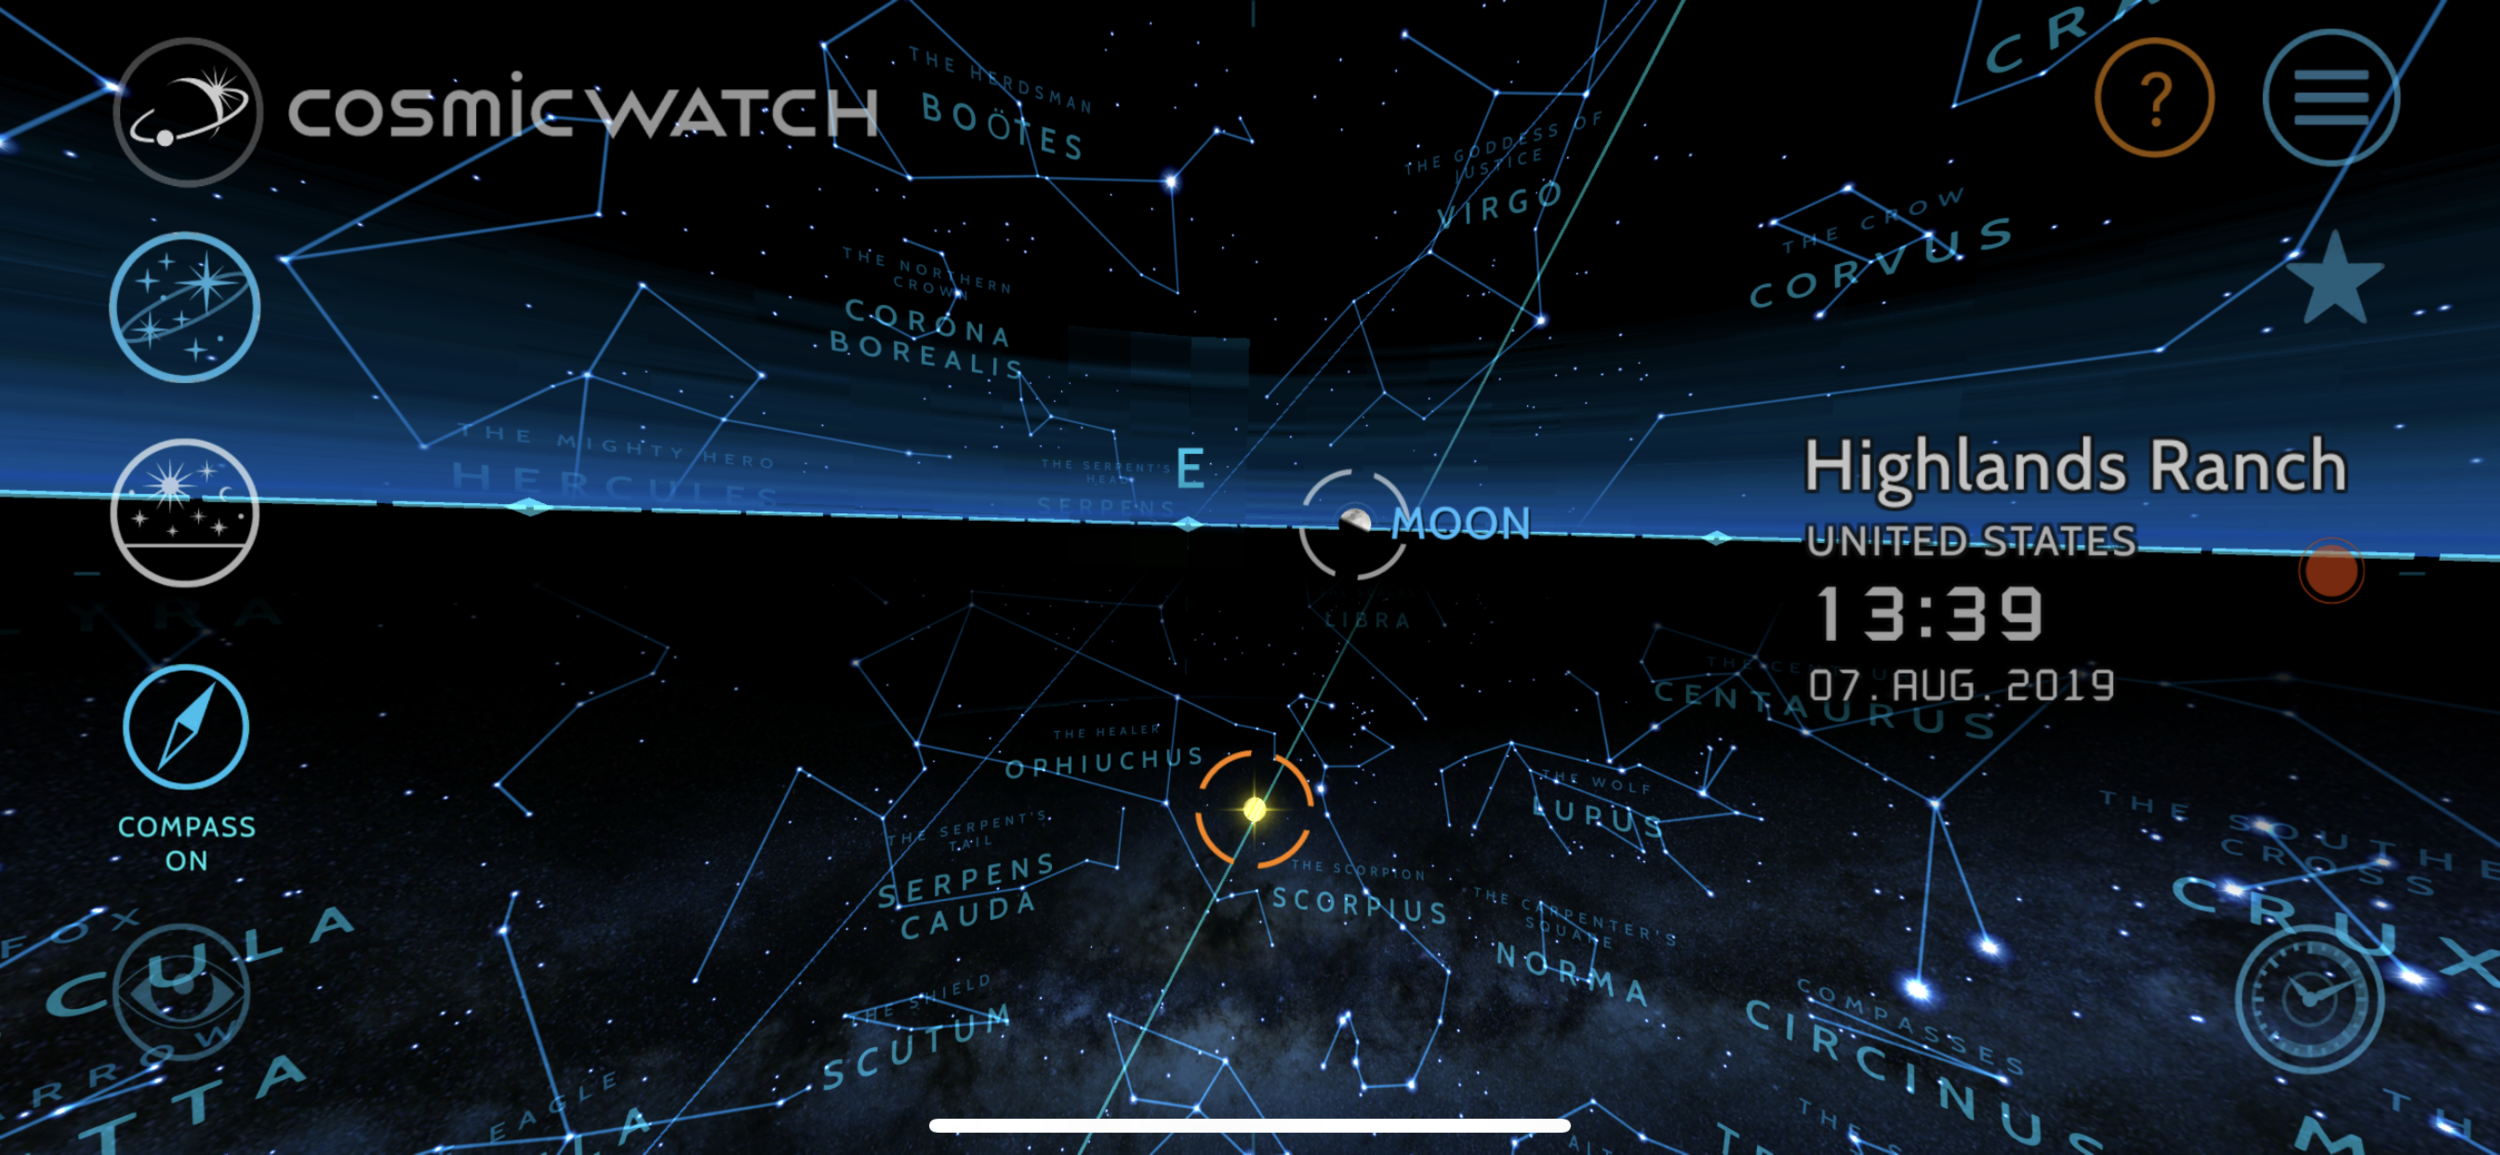 The Sky View mode in Cosmic Watch showing that the moon is rising in Highlands Ranch, CO